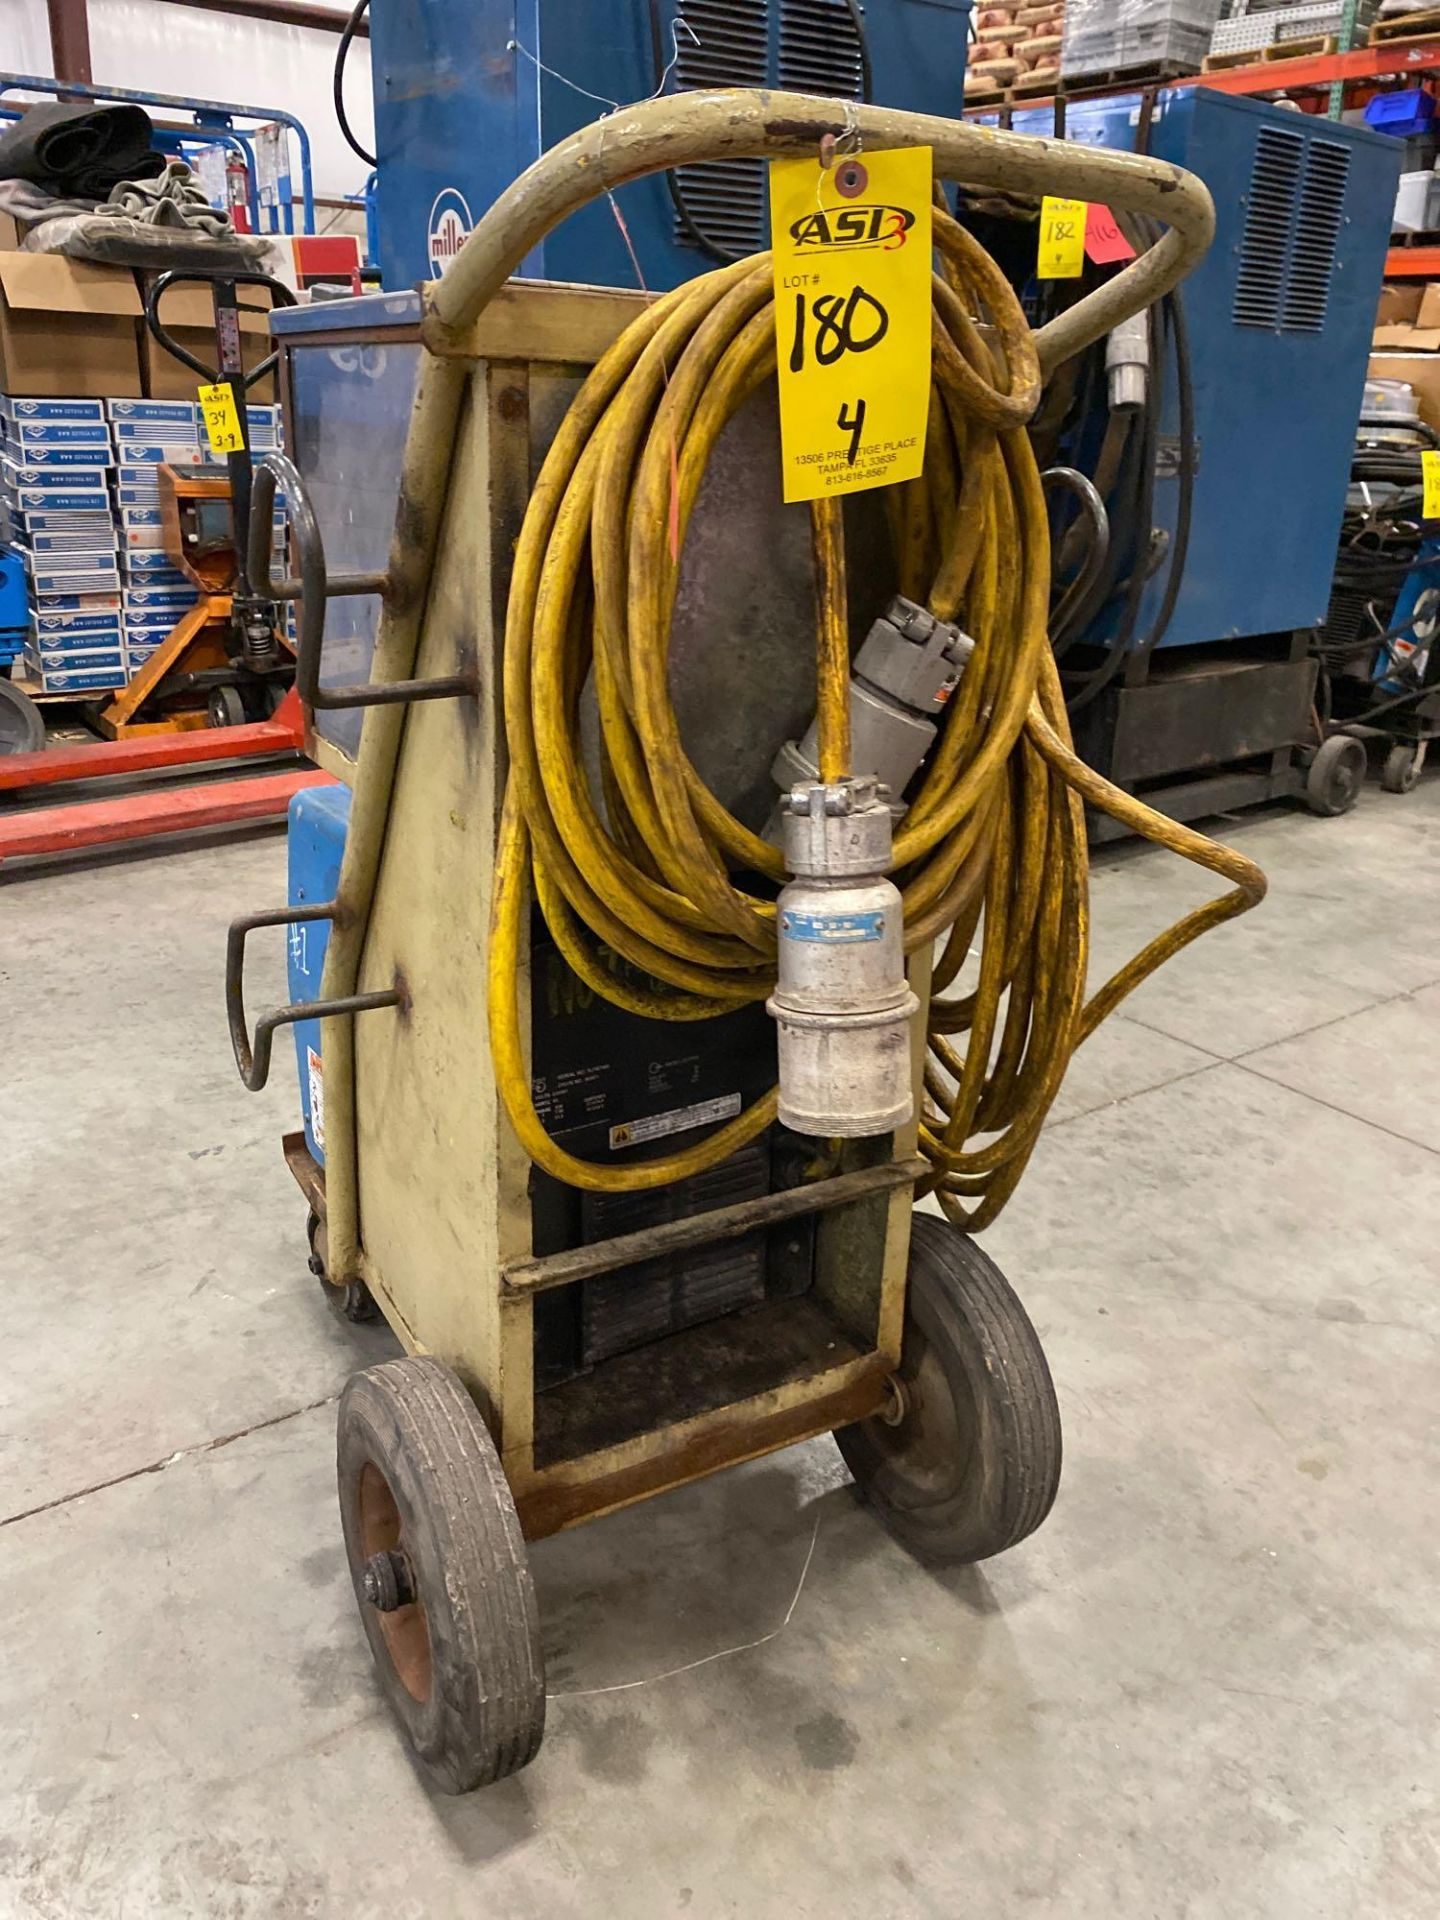 Lot 180 - MILLER XMT 304 WELDER WITH CART AND STORAGE BIN